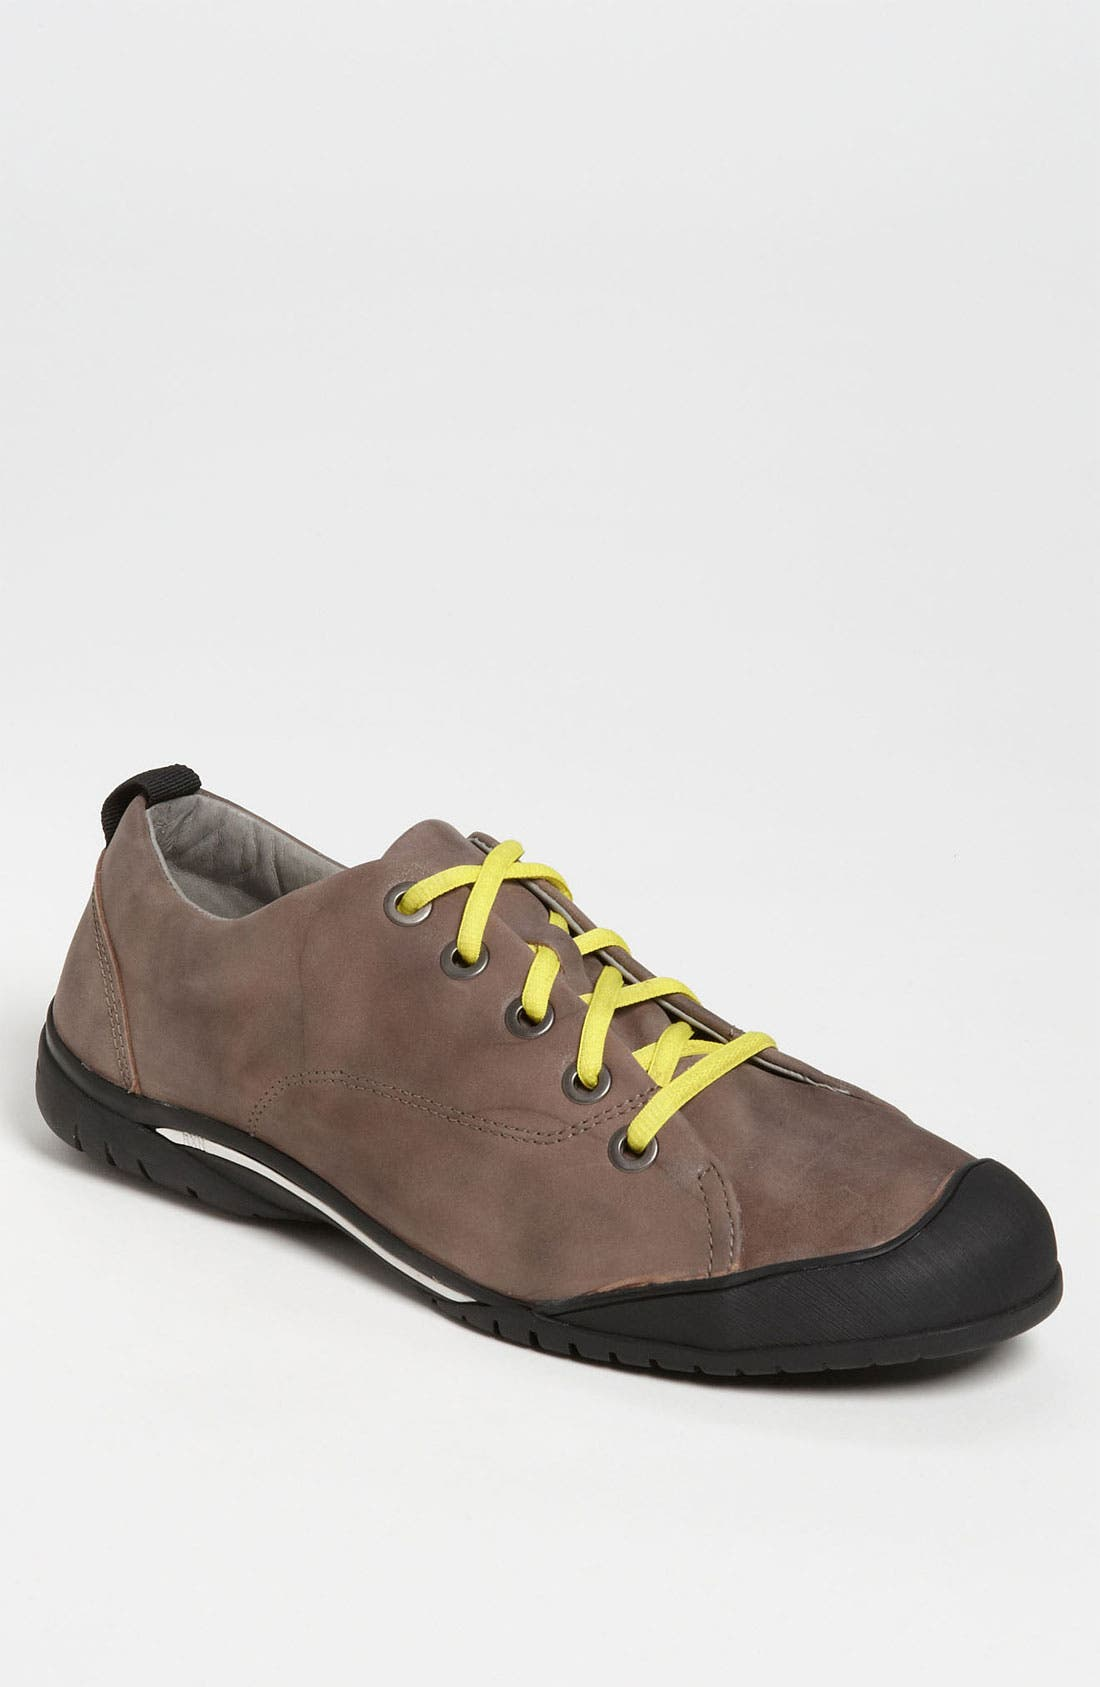 Alternate Image 1 Selected - Kenneth Cole Reaction 'High Volt-Age' Sneaker